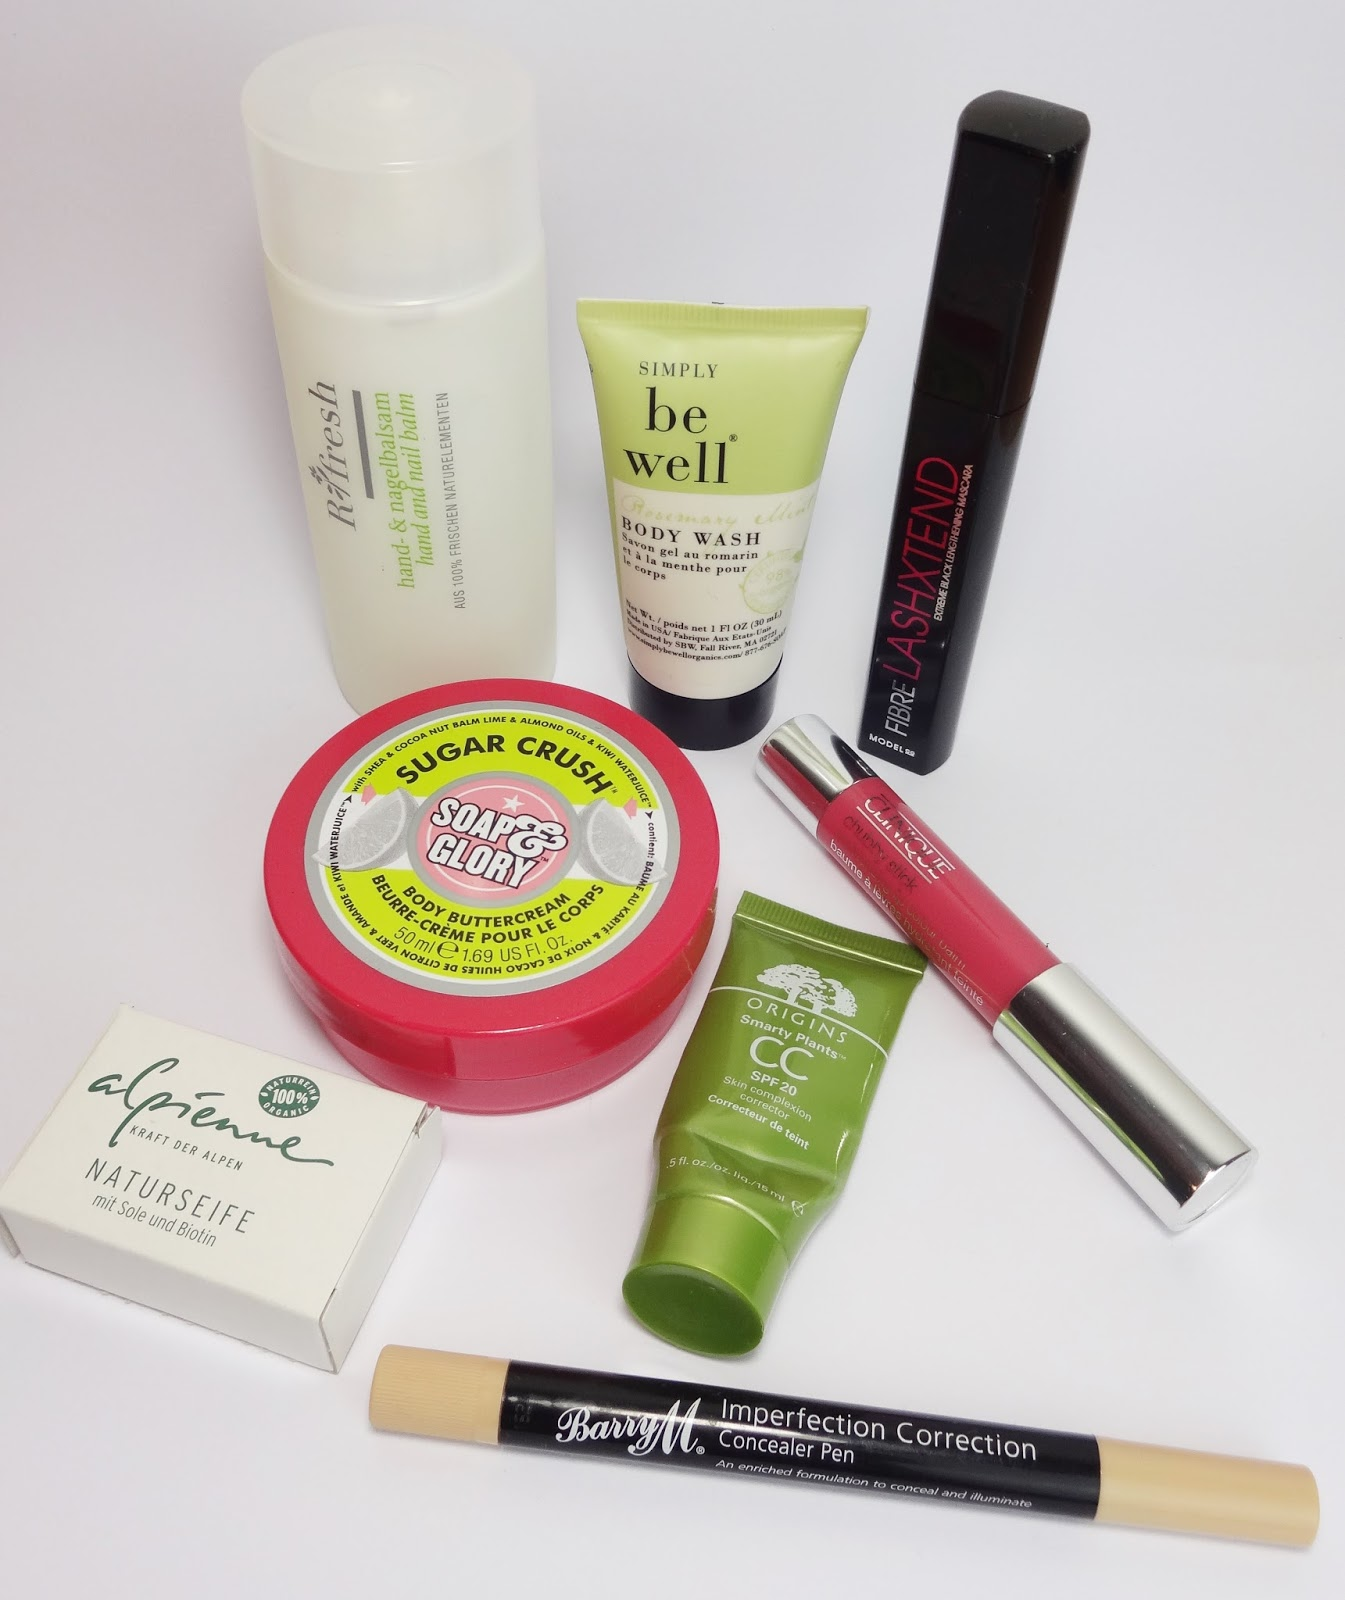 Soap & Glory, Barry M., Clinique, Origins, Ringana, Beautyblog